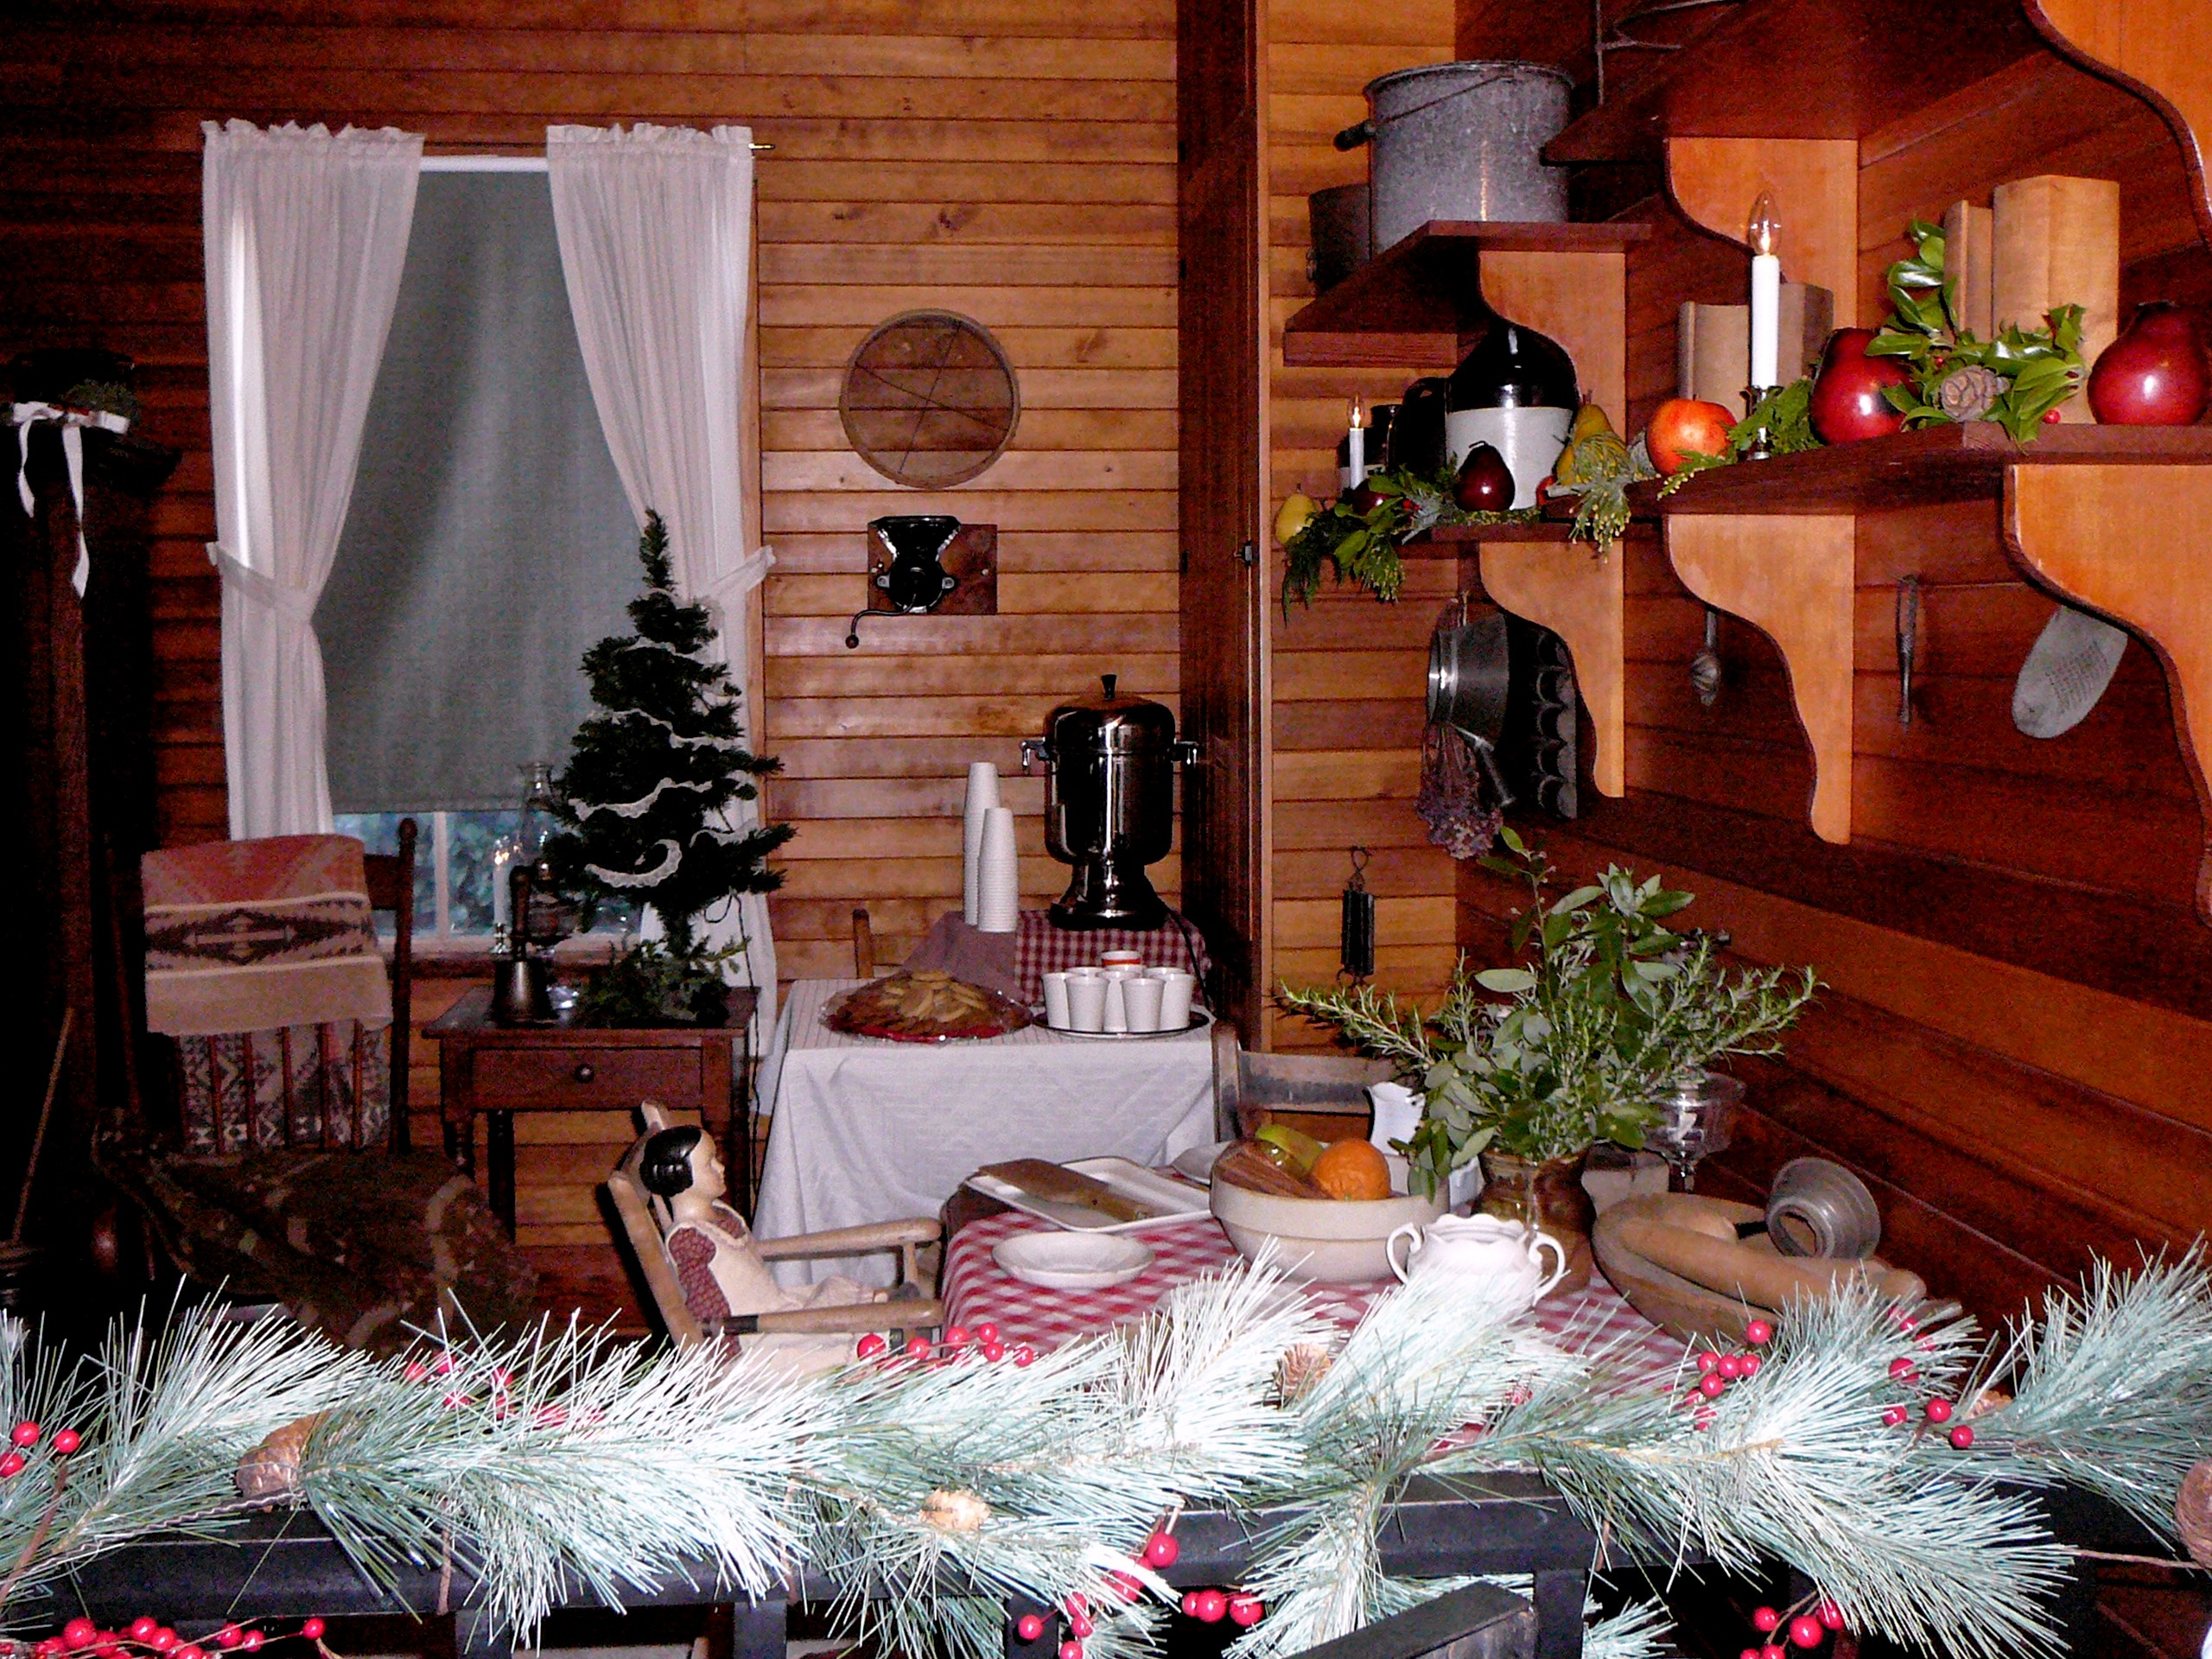 Christmas Events Dec 21 2020 97070 Events   Newell Pioneer Village